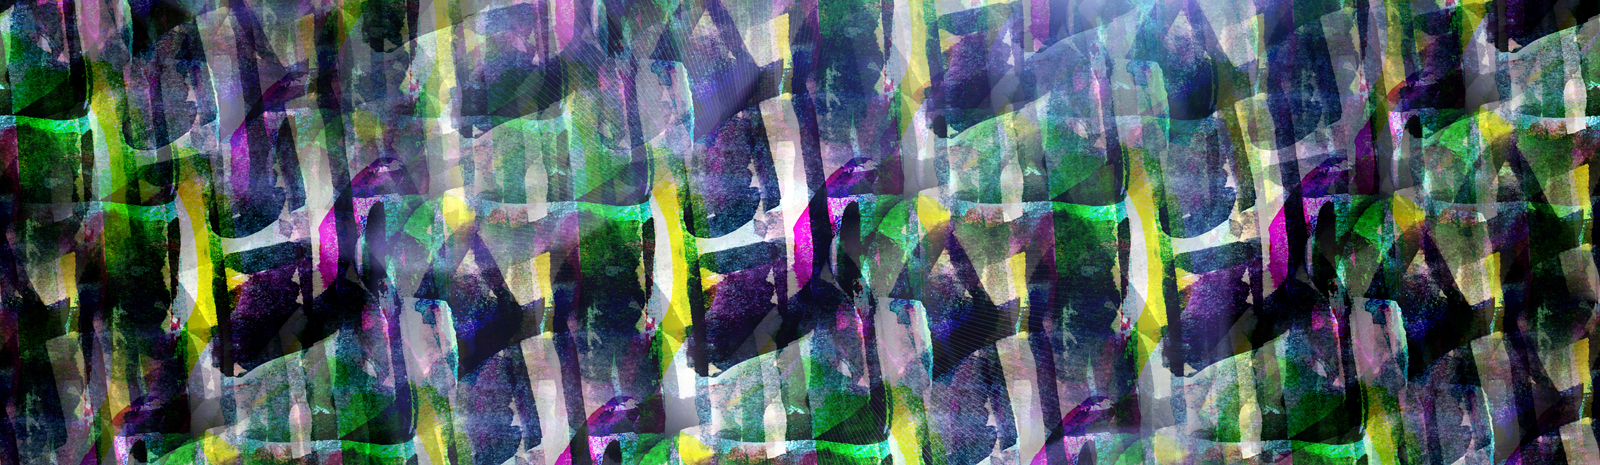 glare from abstract watercolor Blue green yellow seamless texture hand painted background